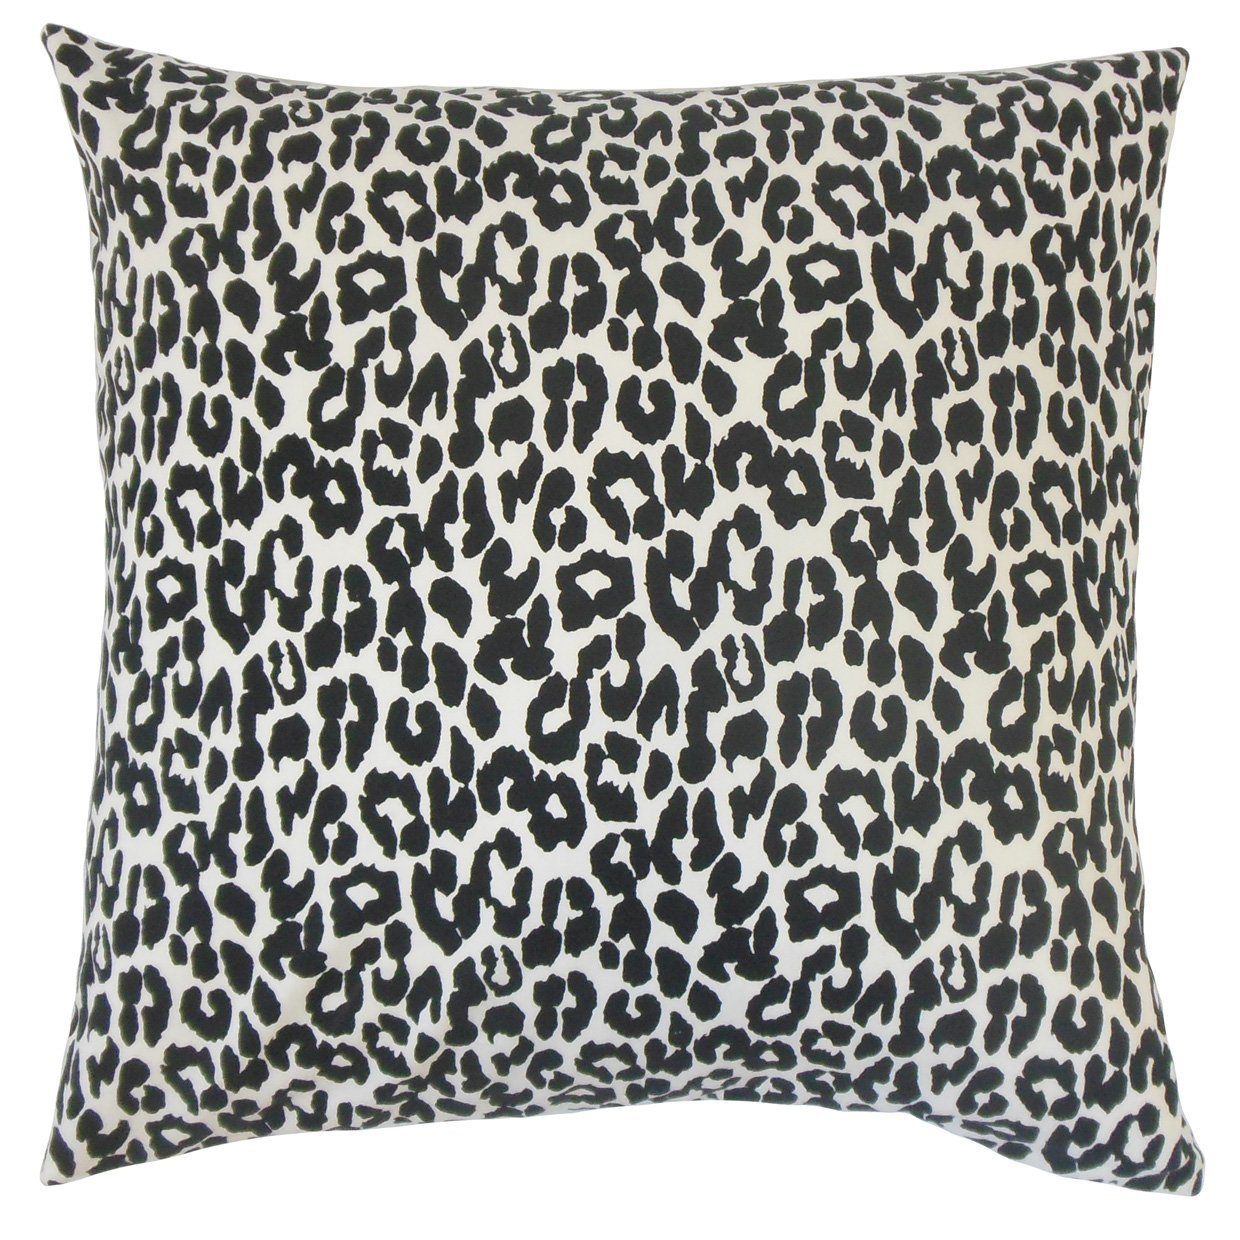 The Pillow Collection Black Olesia Animal Print Bedding Sham, King/20'' x 36''